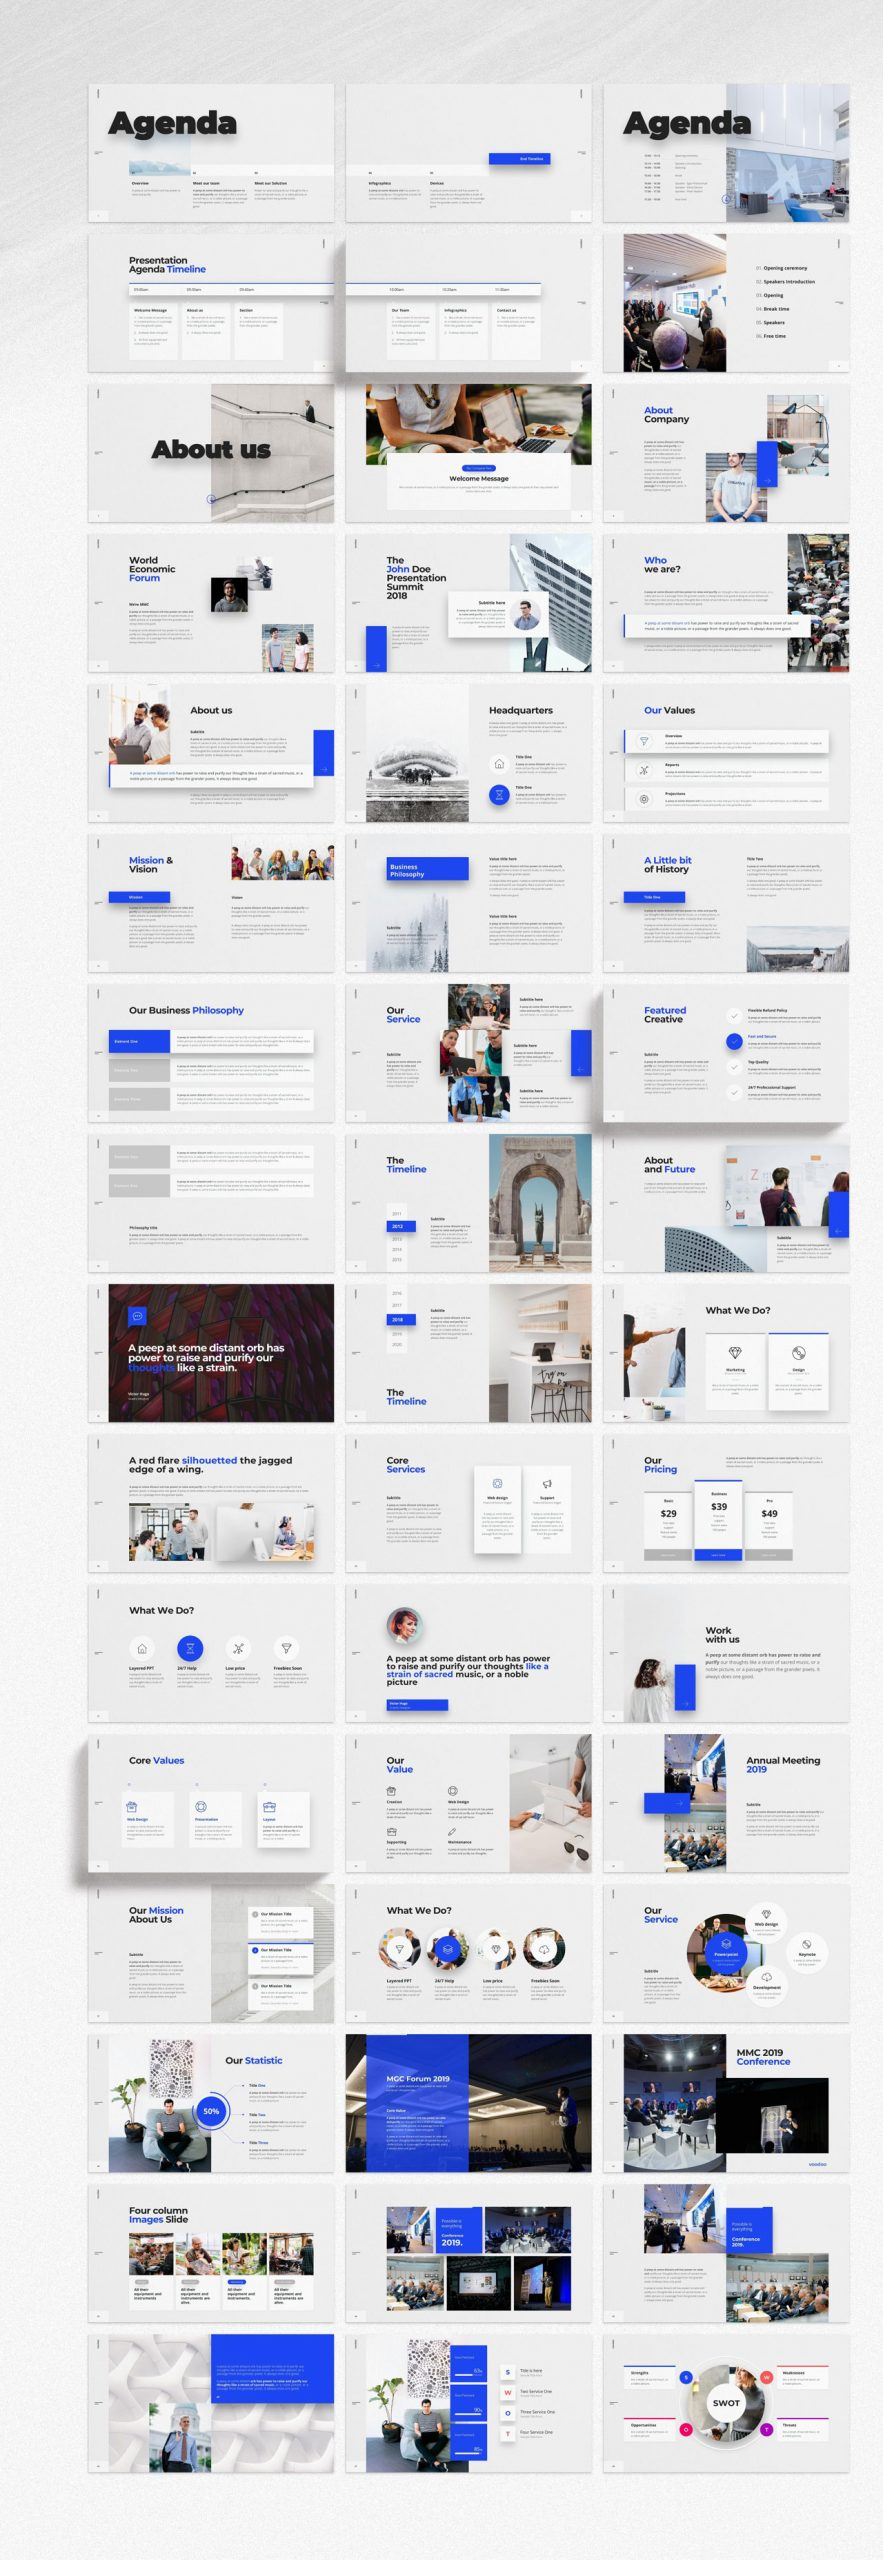 Voodoo Presentation Templates for Powerpoint, Keynote, and Google Slides.